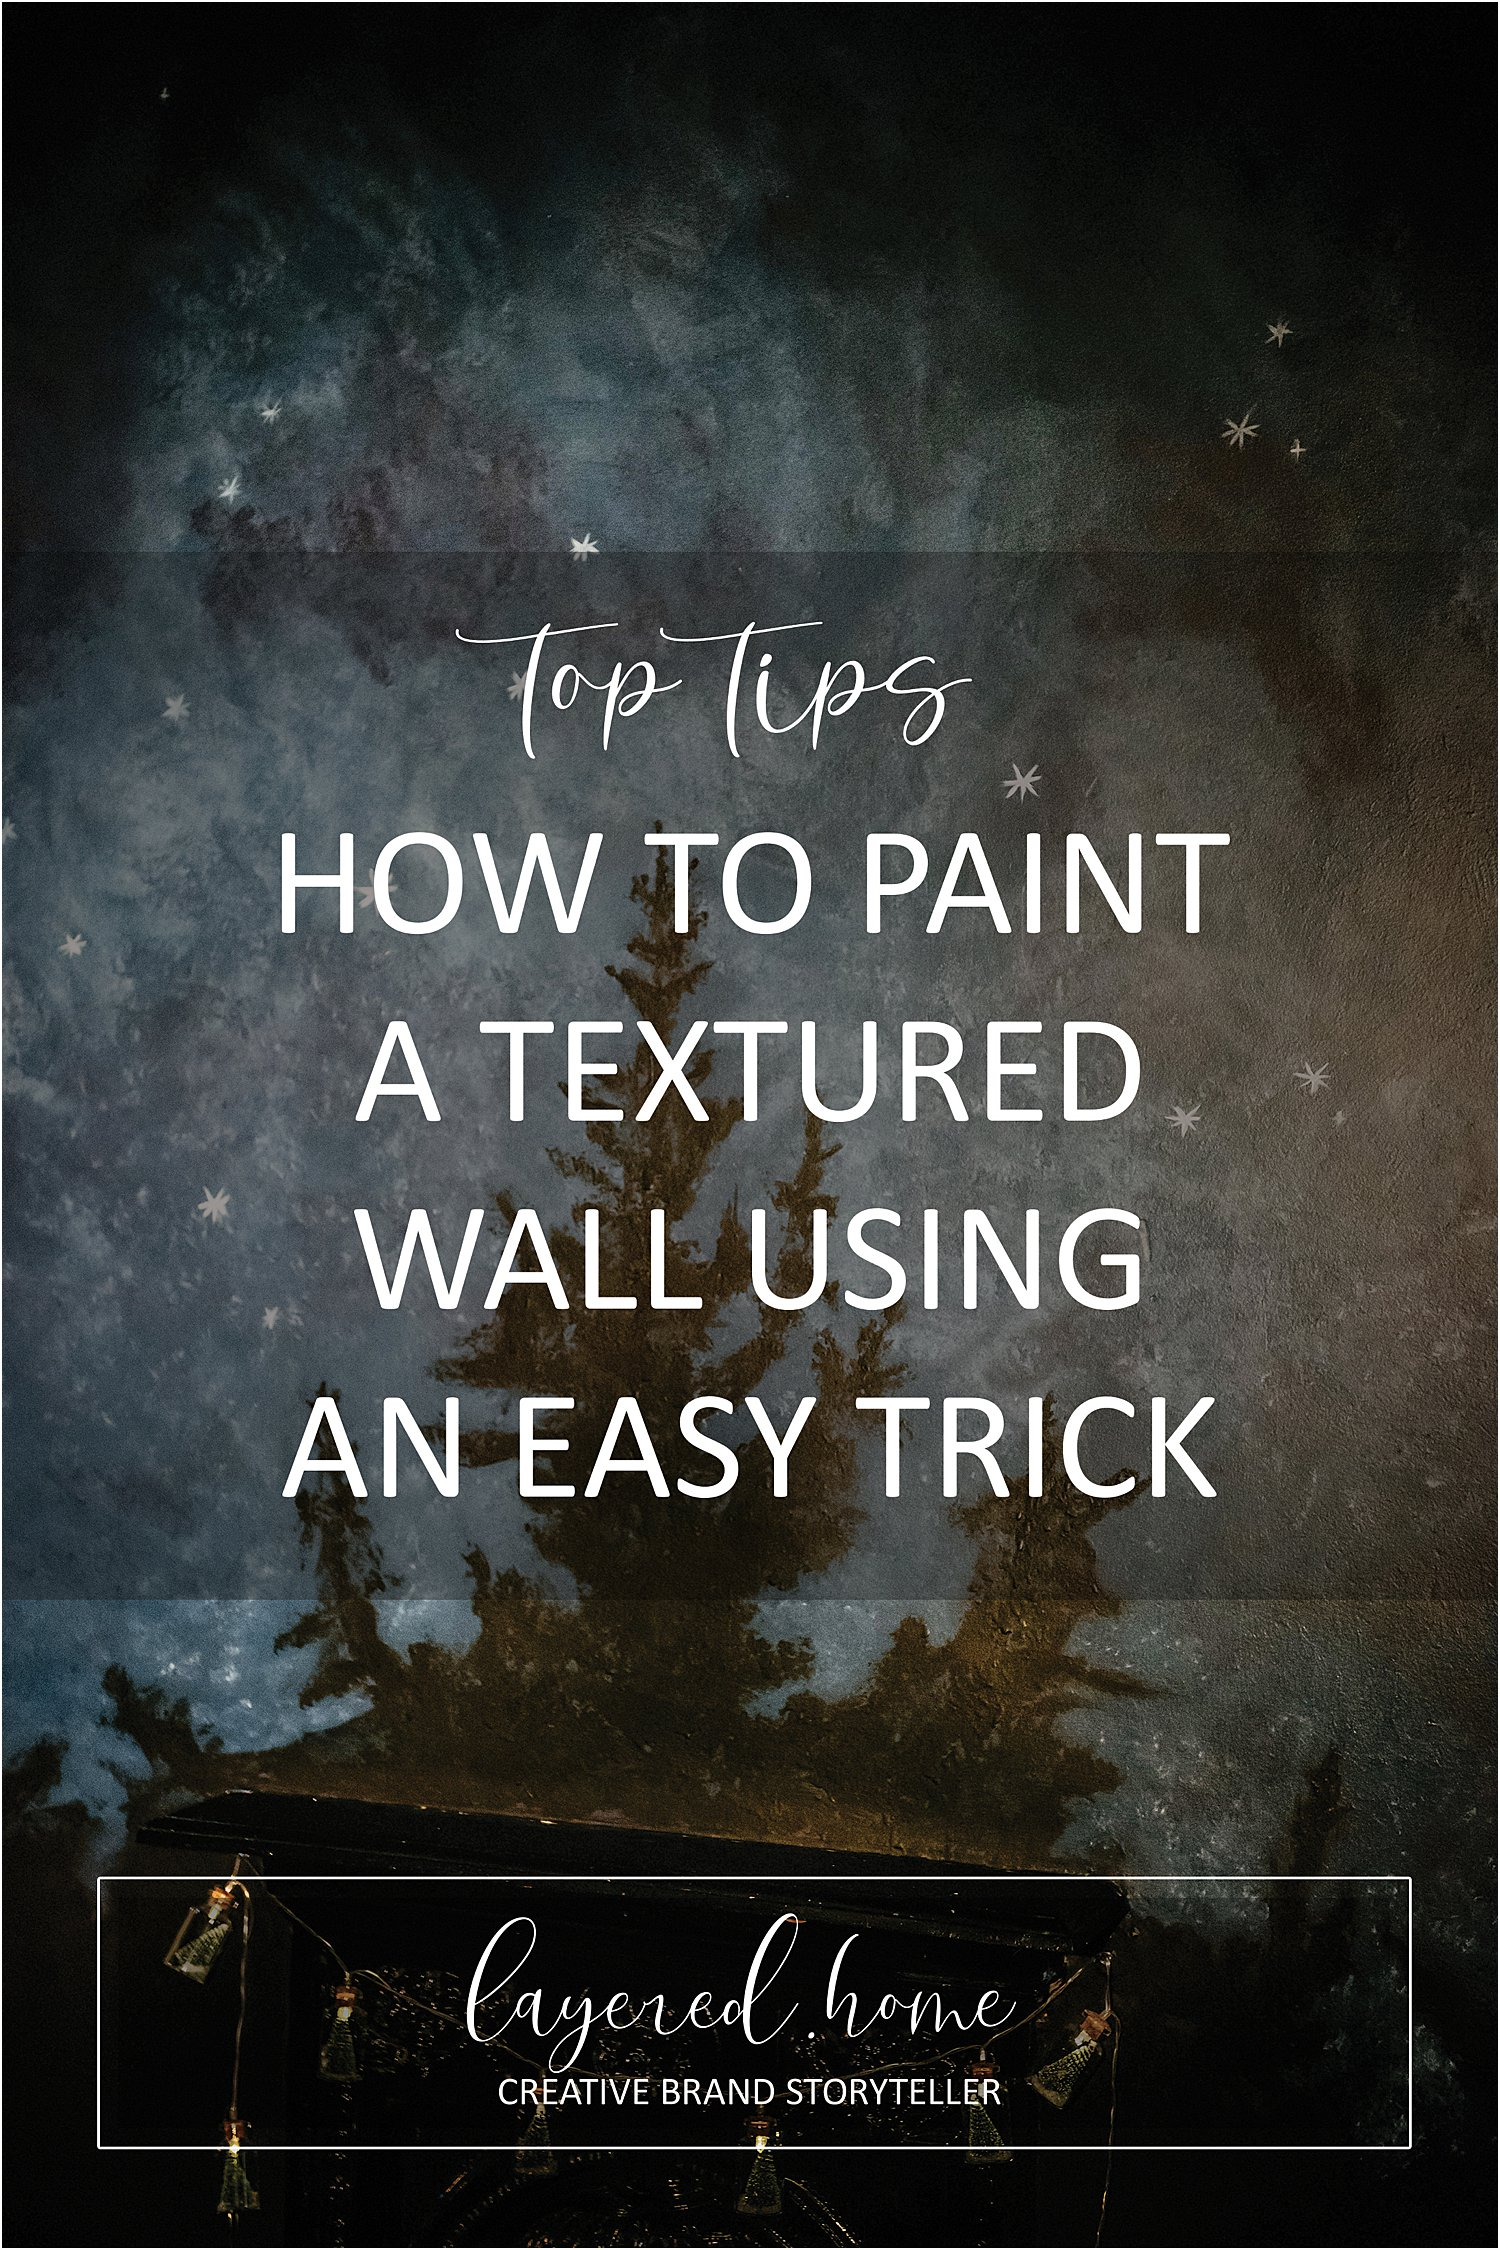 create-a-textured-wall-effect-using-paint-in-3-easy-steps